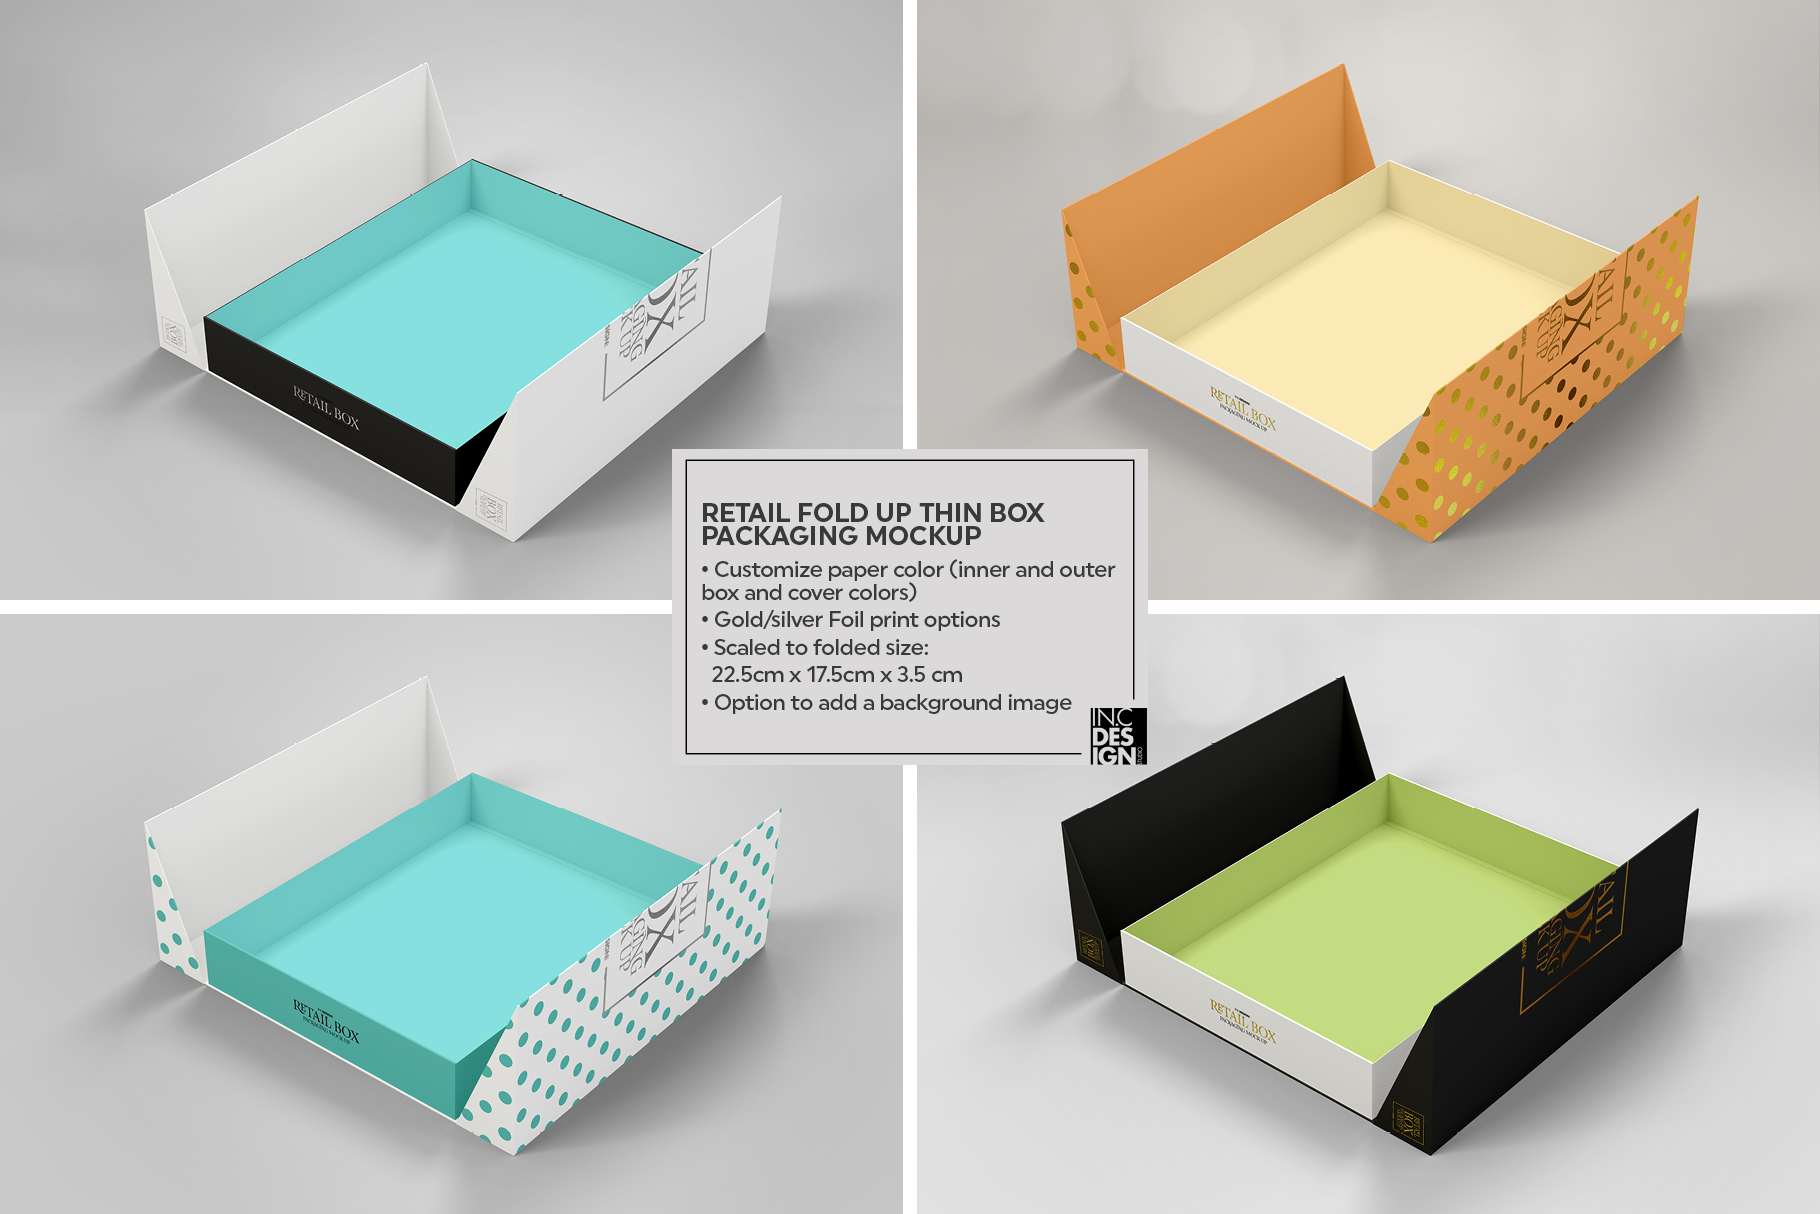 Fold Up Retail Thin Box Packaging Mockup example image 6